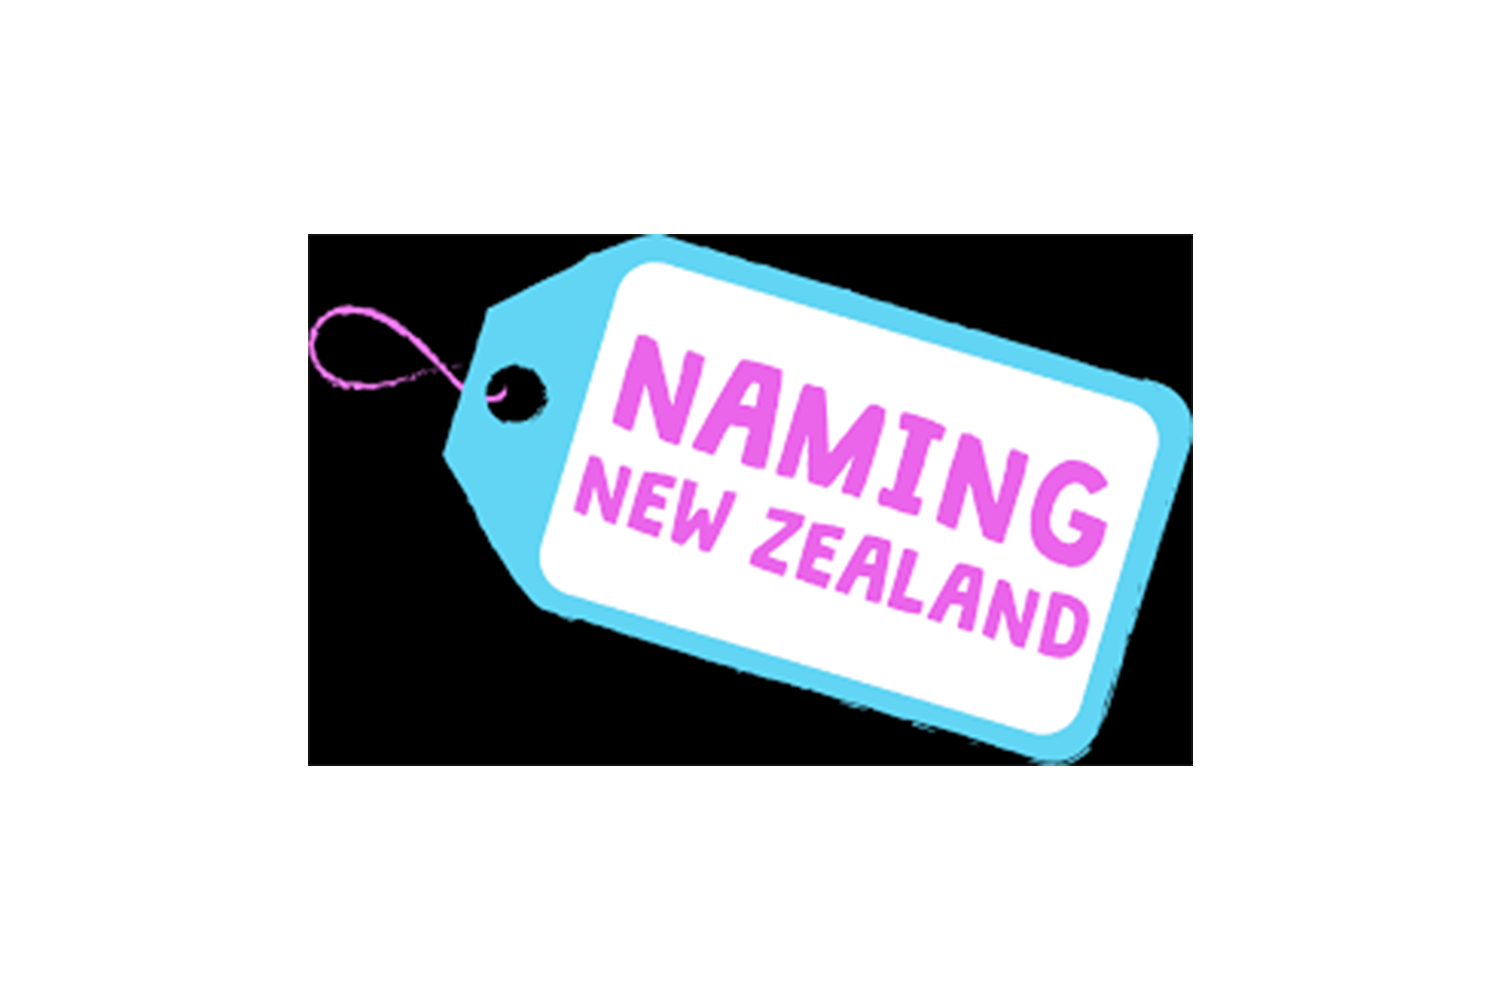 Naming New Zealand